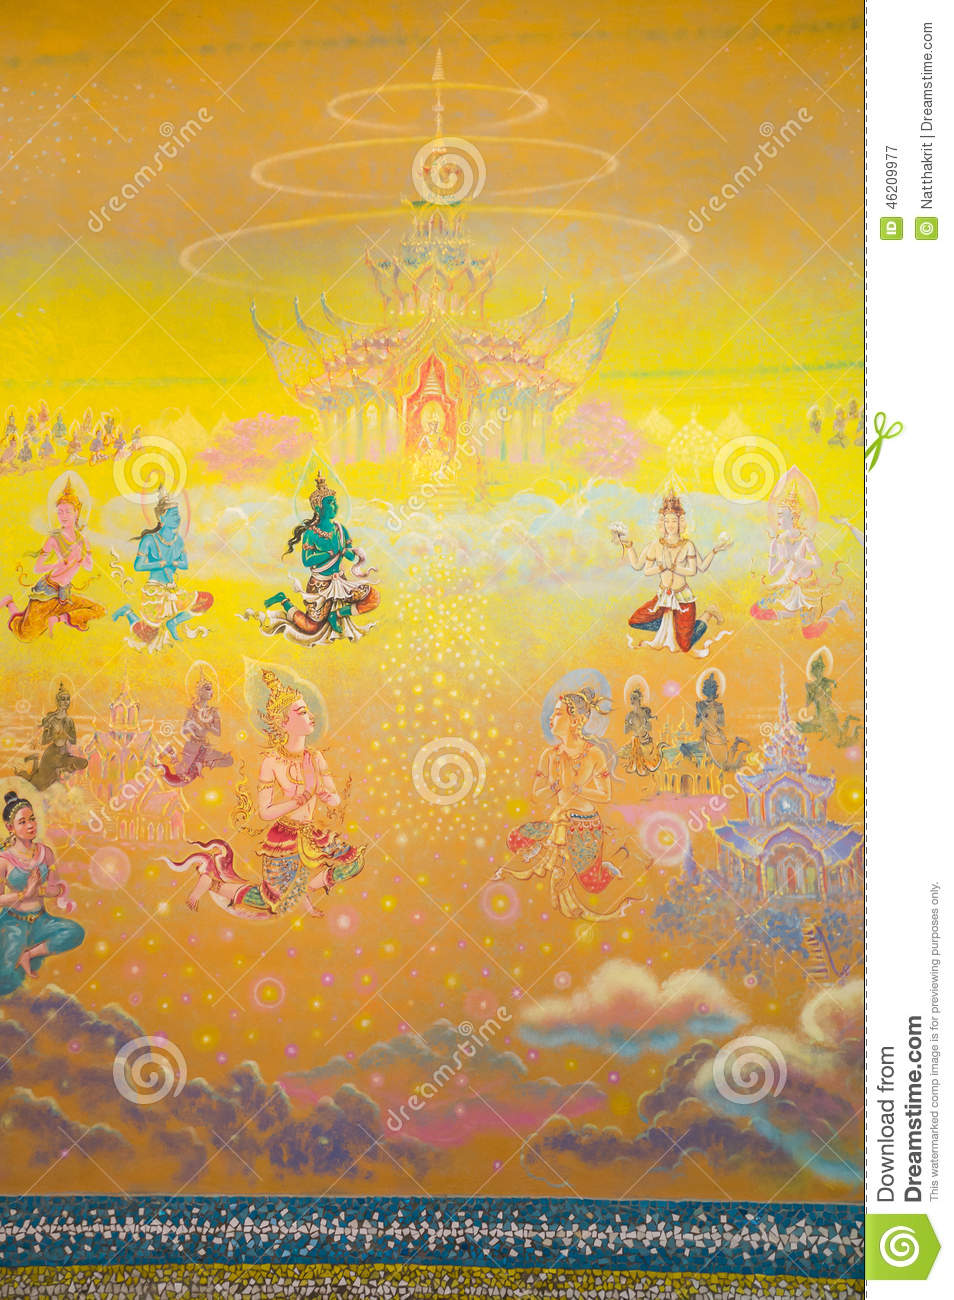 Watercolor art history - Watercolor Art Of History Of Buddhism On Sanctuary Wall Stock Photo